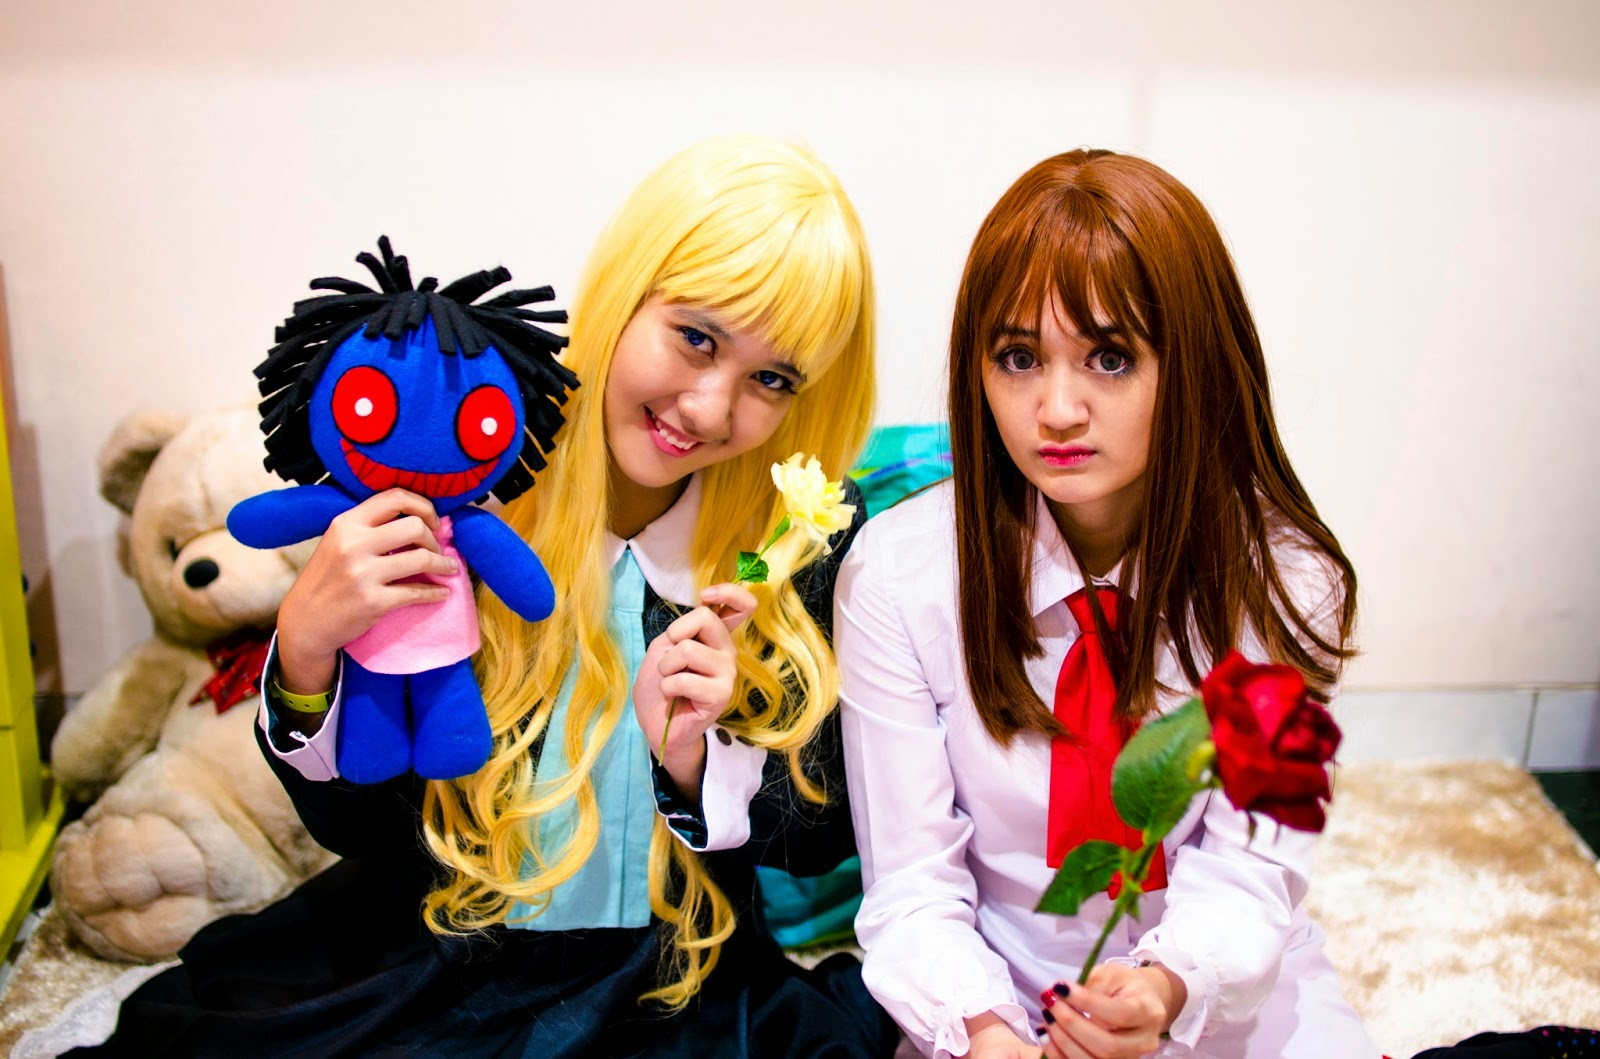 Ib and Mary cosplay